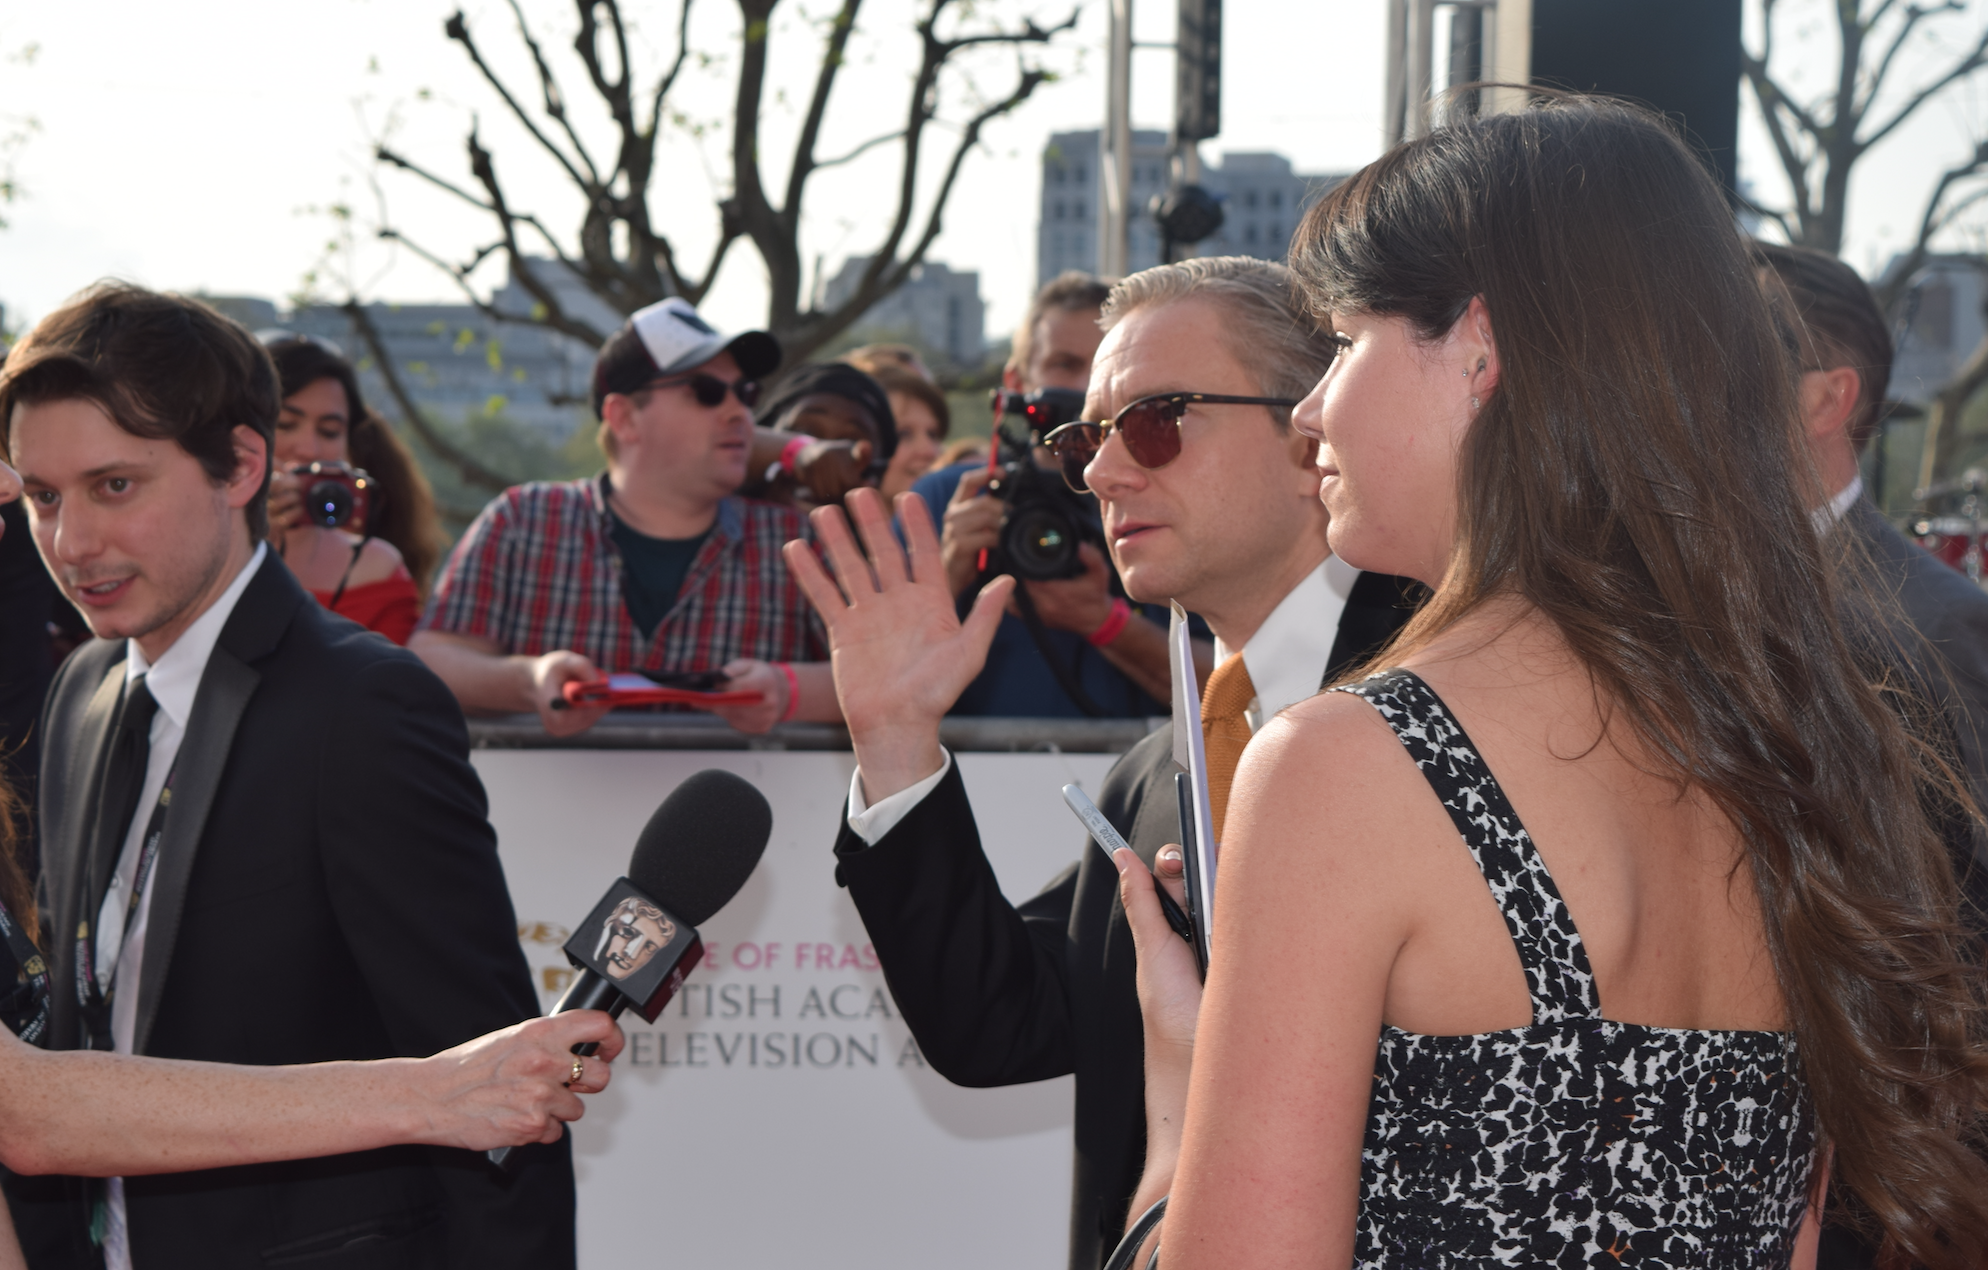 Sherlock's Martin Freeman gives a cool wave, but no interviews, to the press.